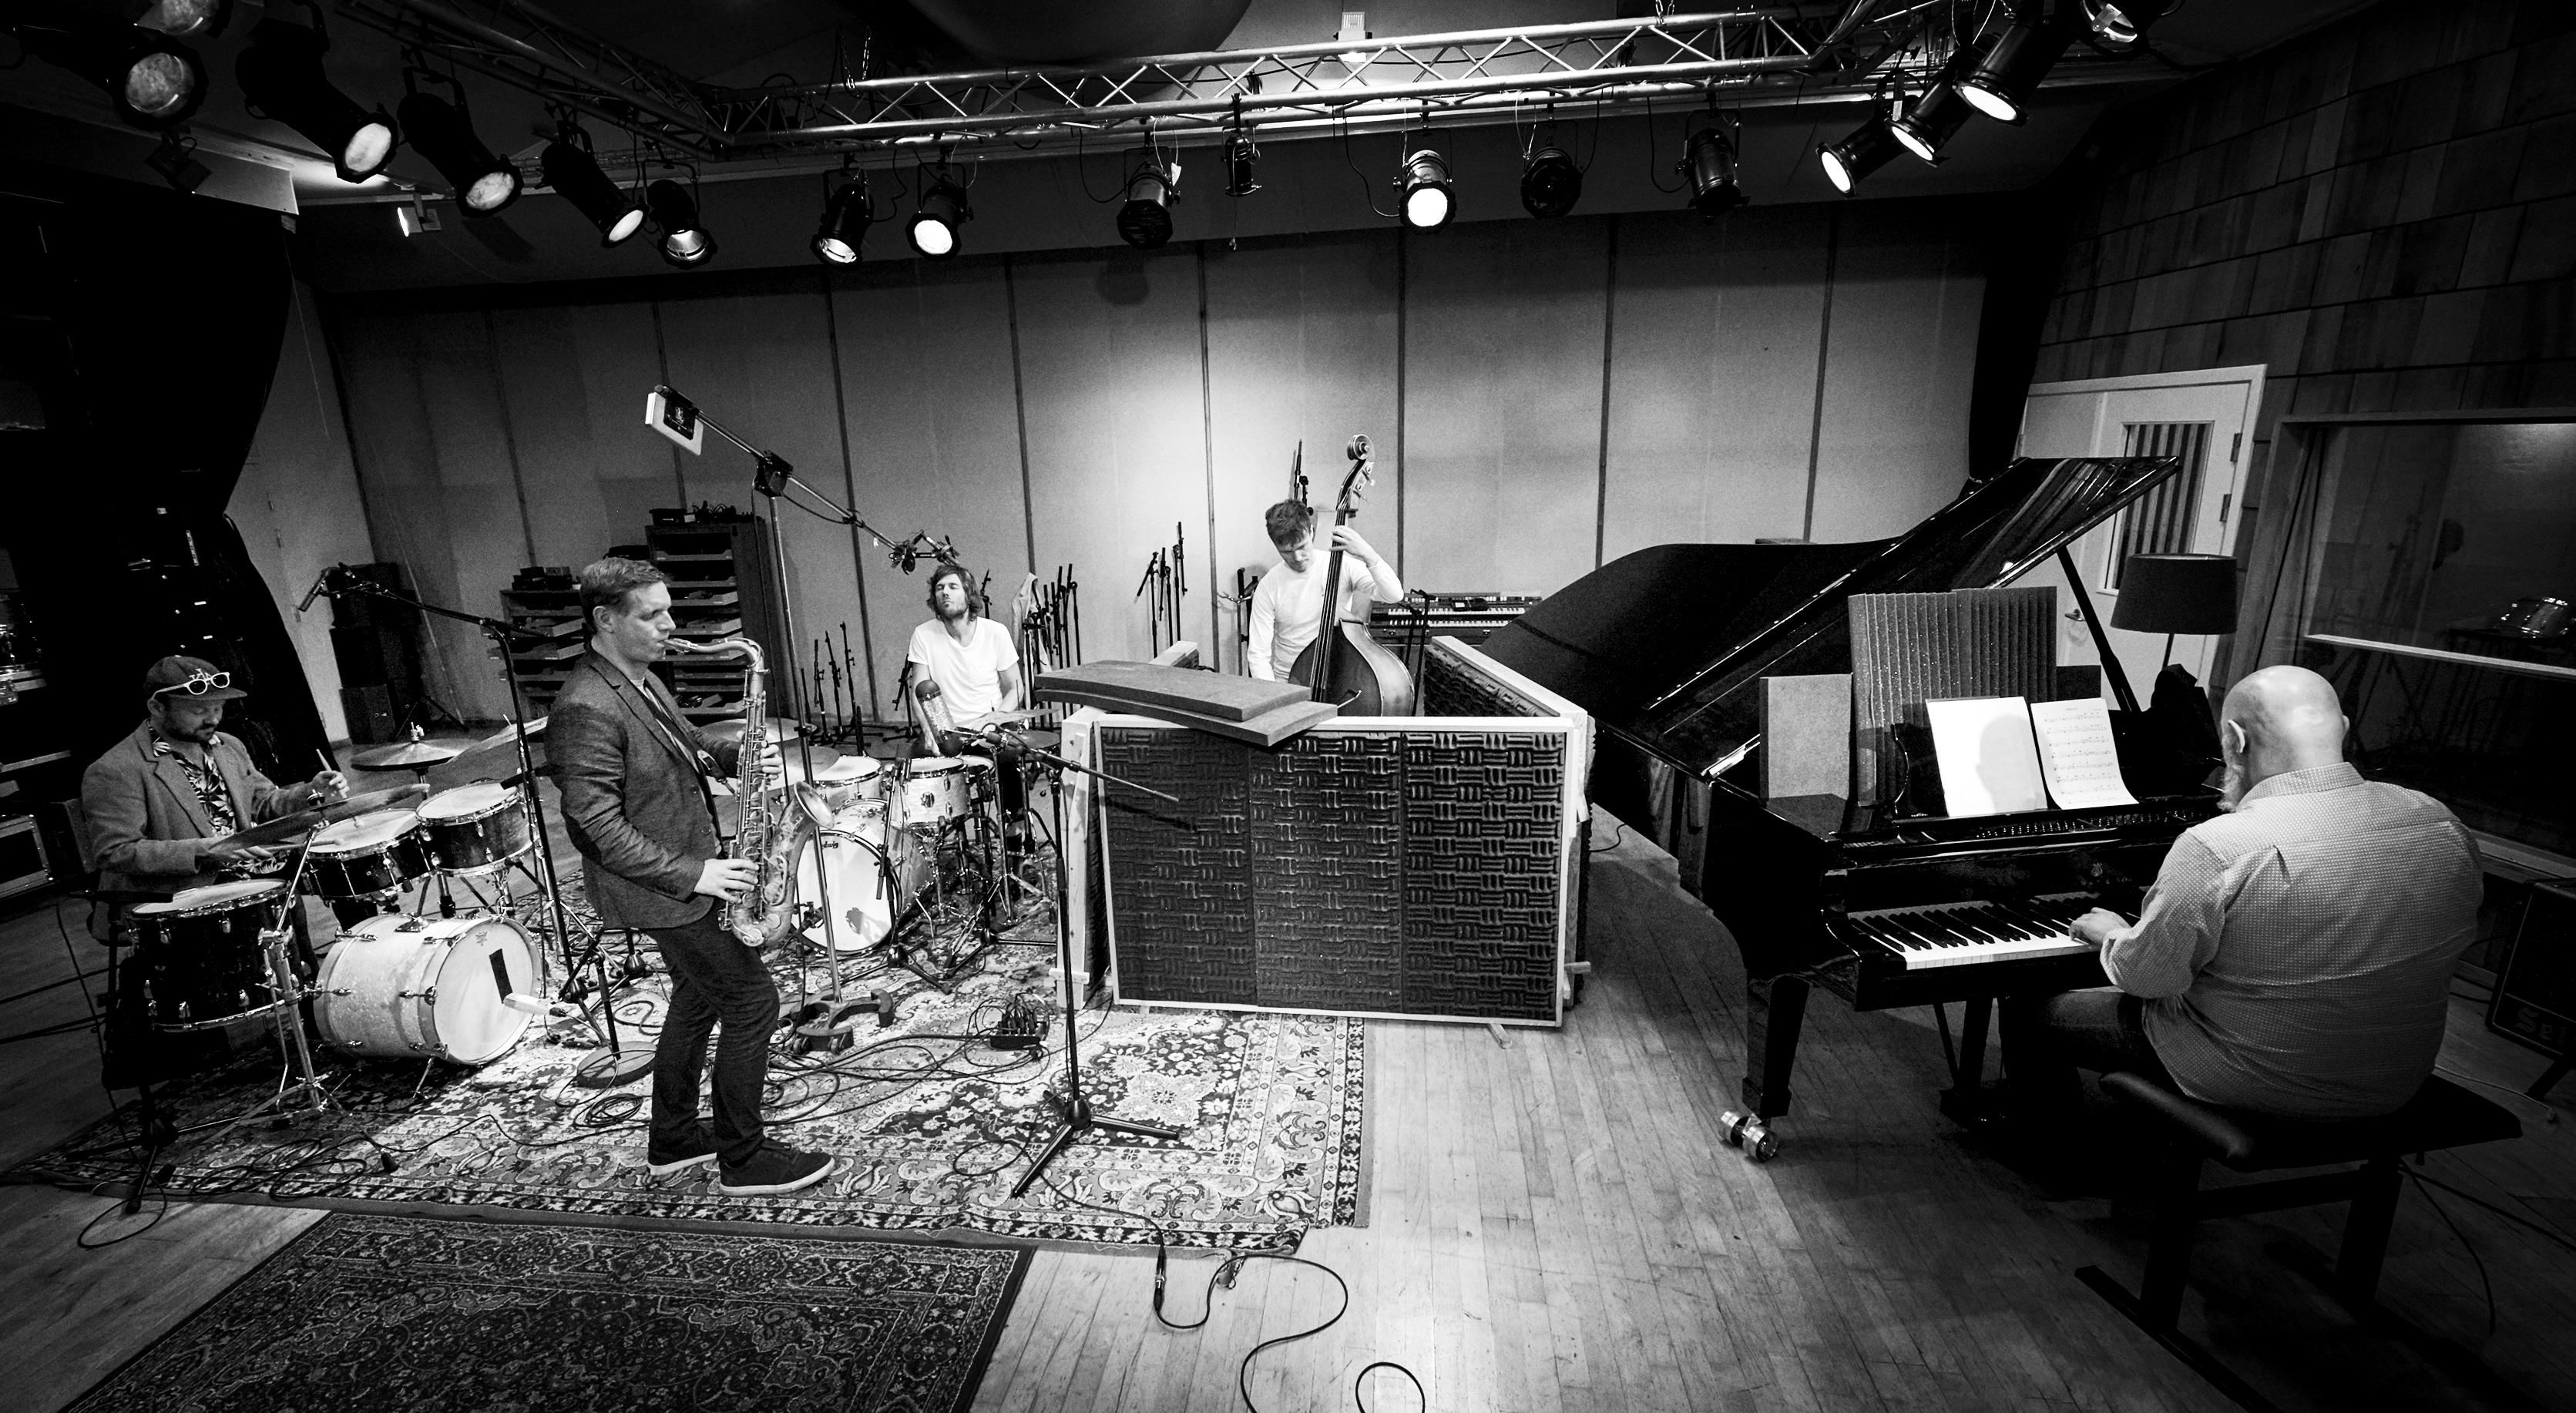 Jan Harbeck Quartet plus one - from recording the album 'The Sound The Rhythm'